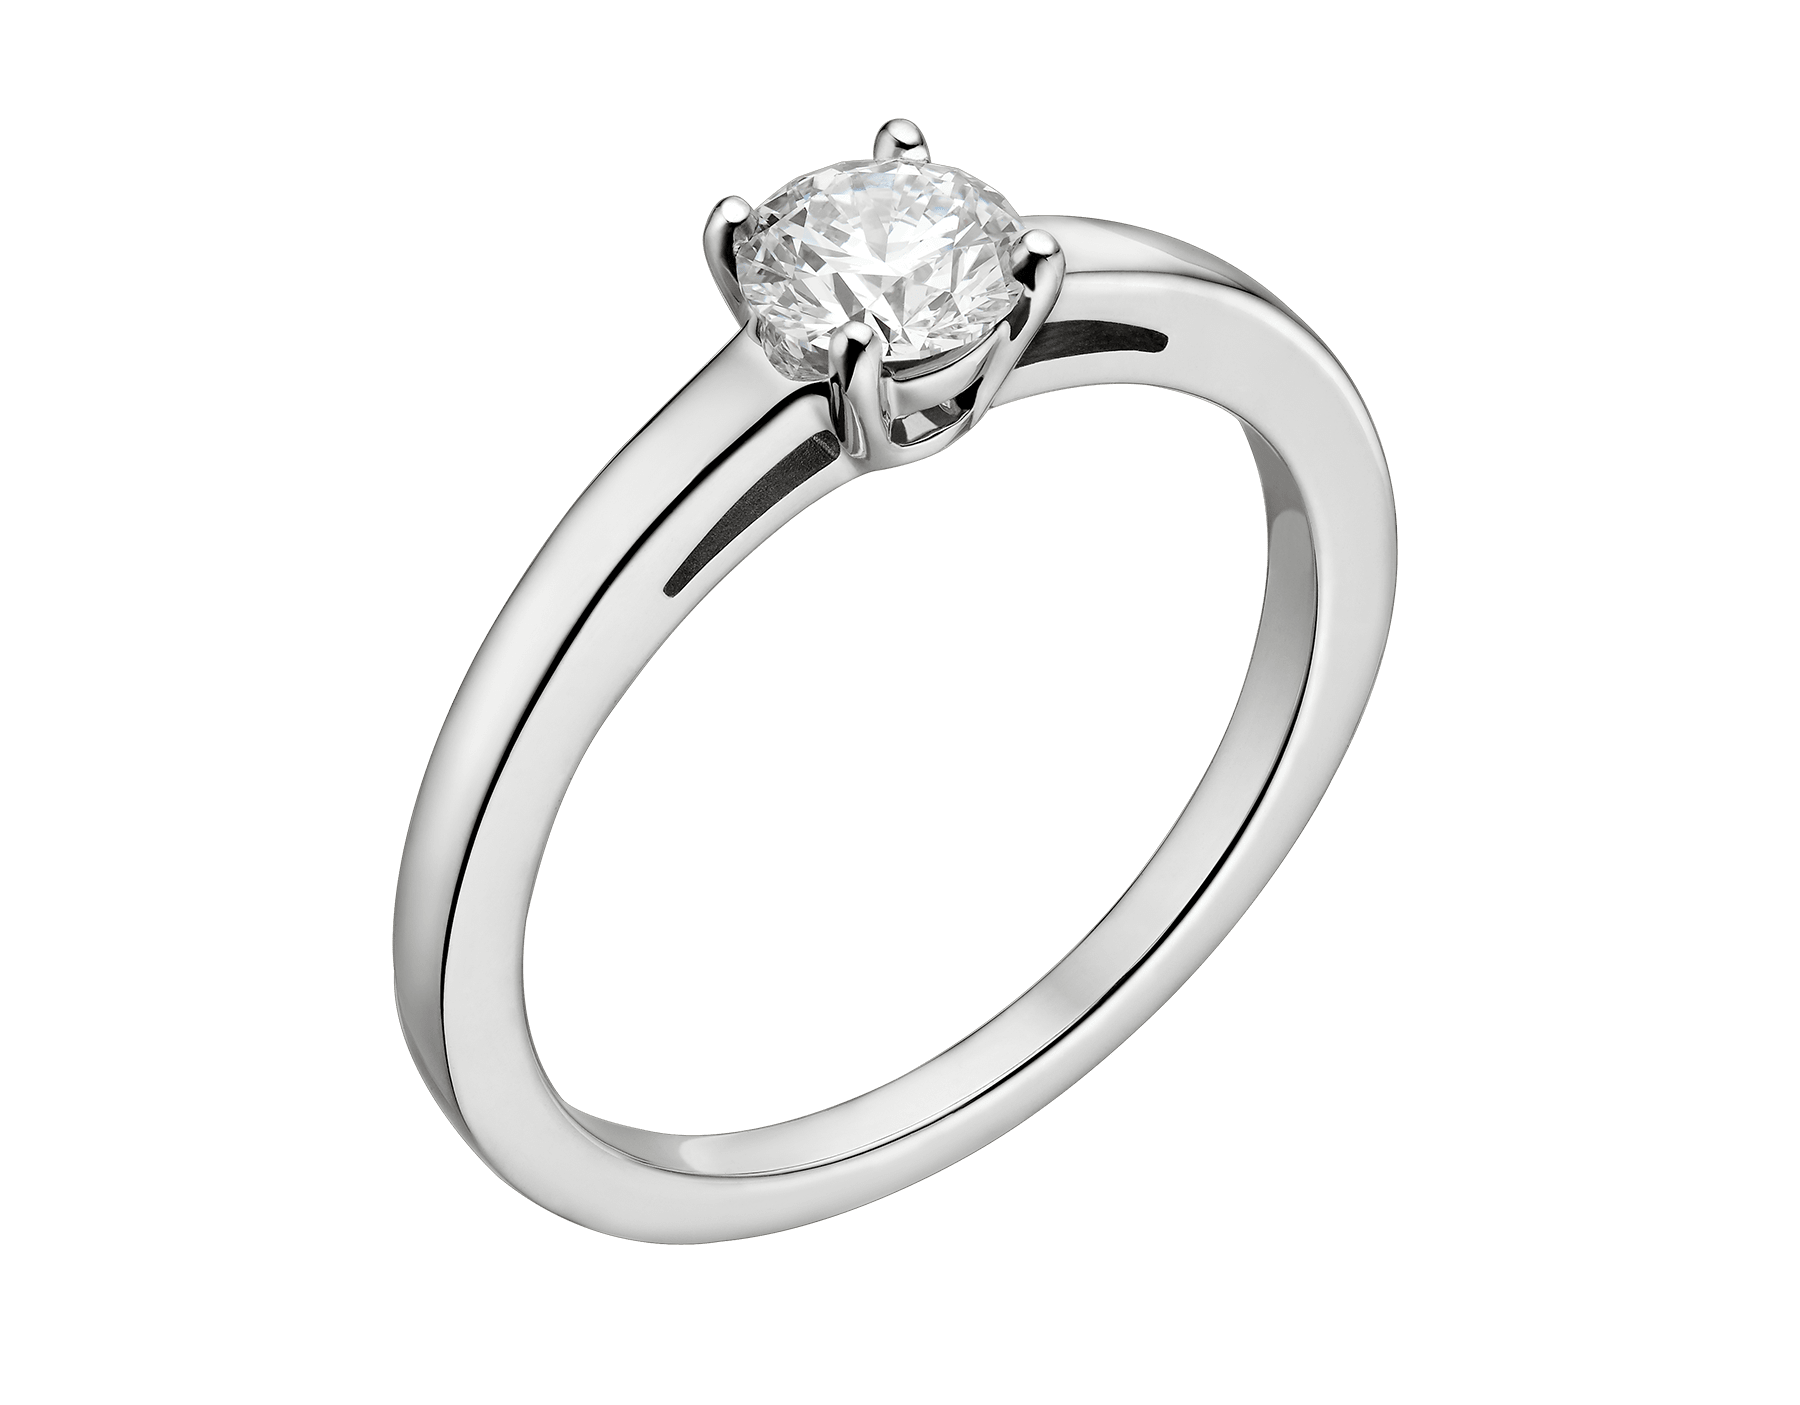 Griffe solitaire ring in platinum with round brilliant cut diamond. Available from 0.30 ct. A classic setting that allows the beauty and the pureness of the solitaire diamond to assert itself. 327817 image 1